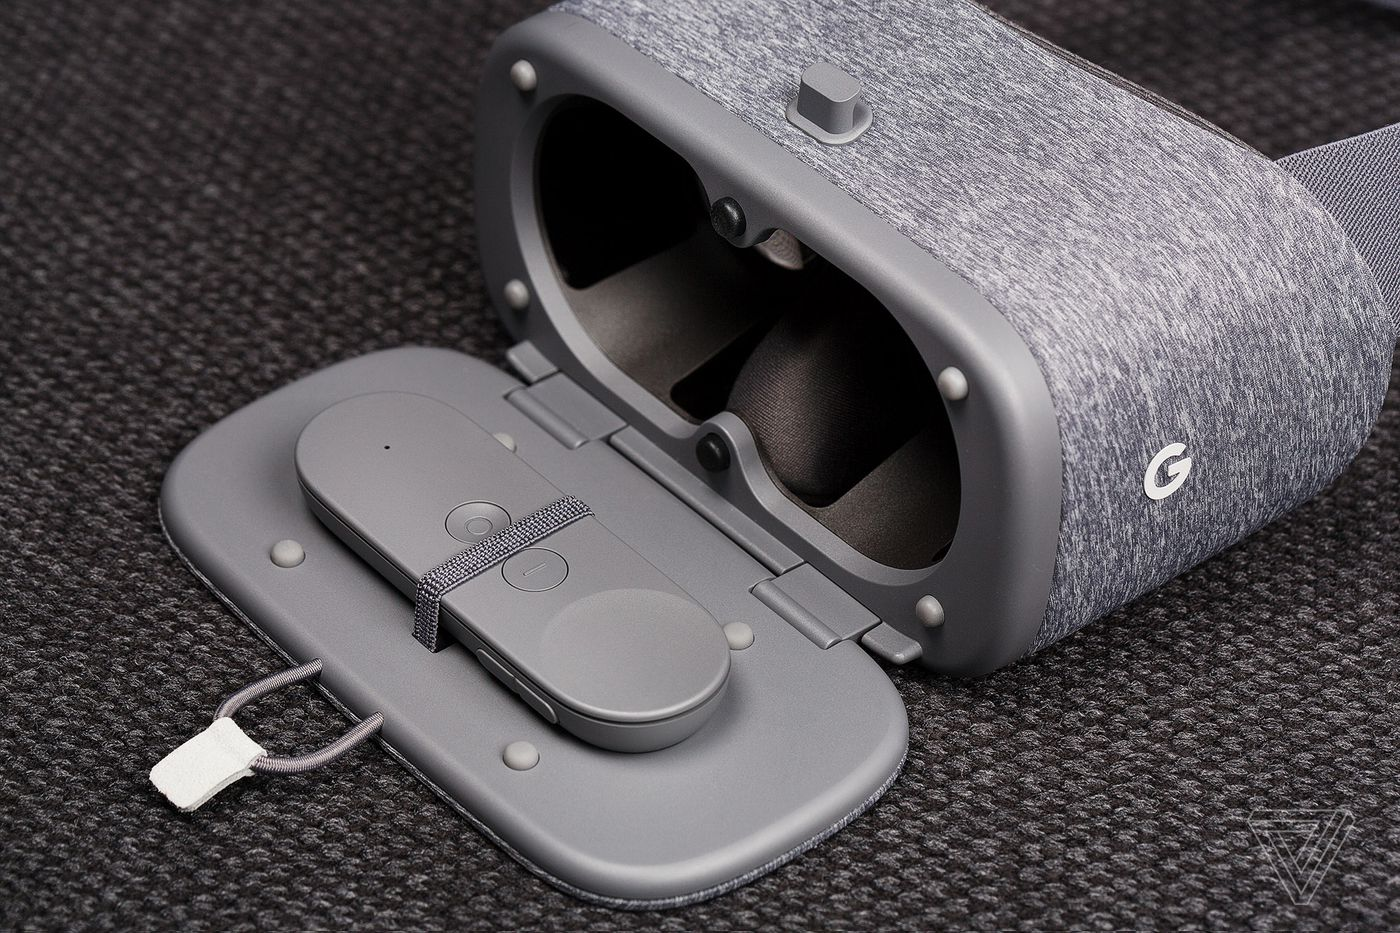 Google Daydream View review: mobile VR done mostly right - The Verge